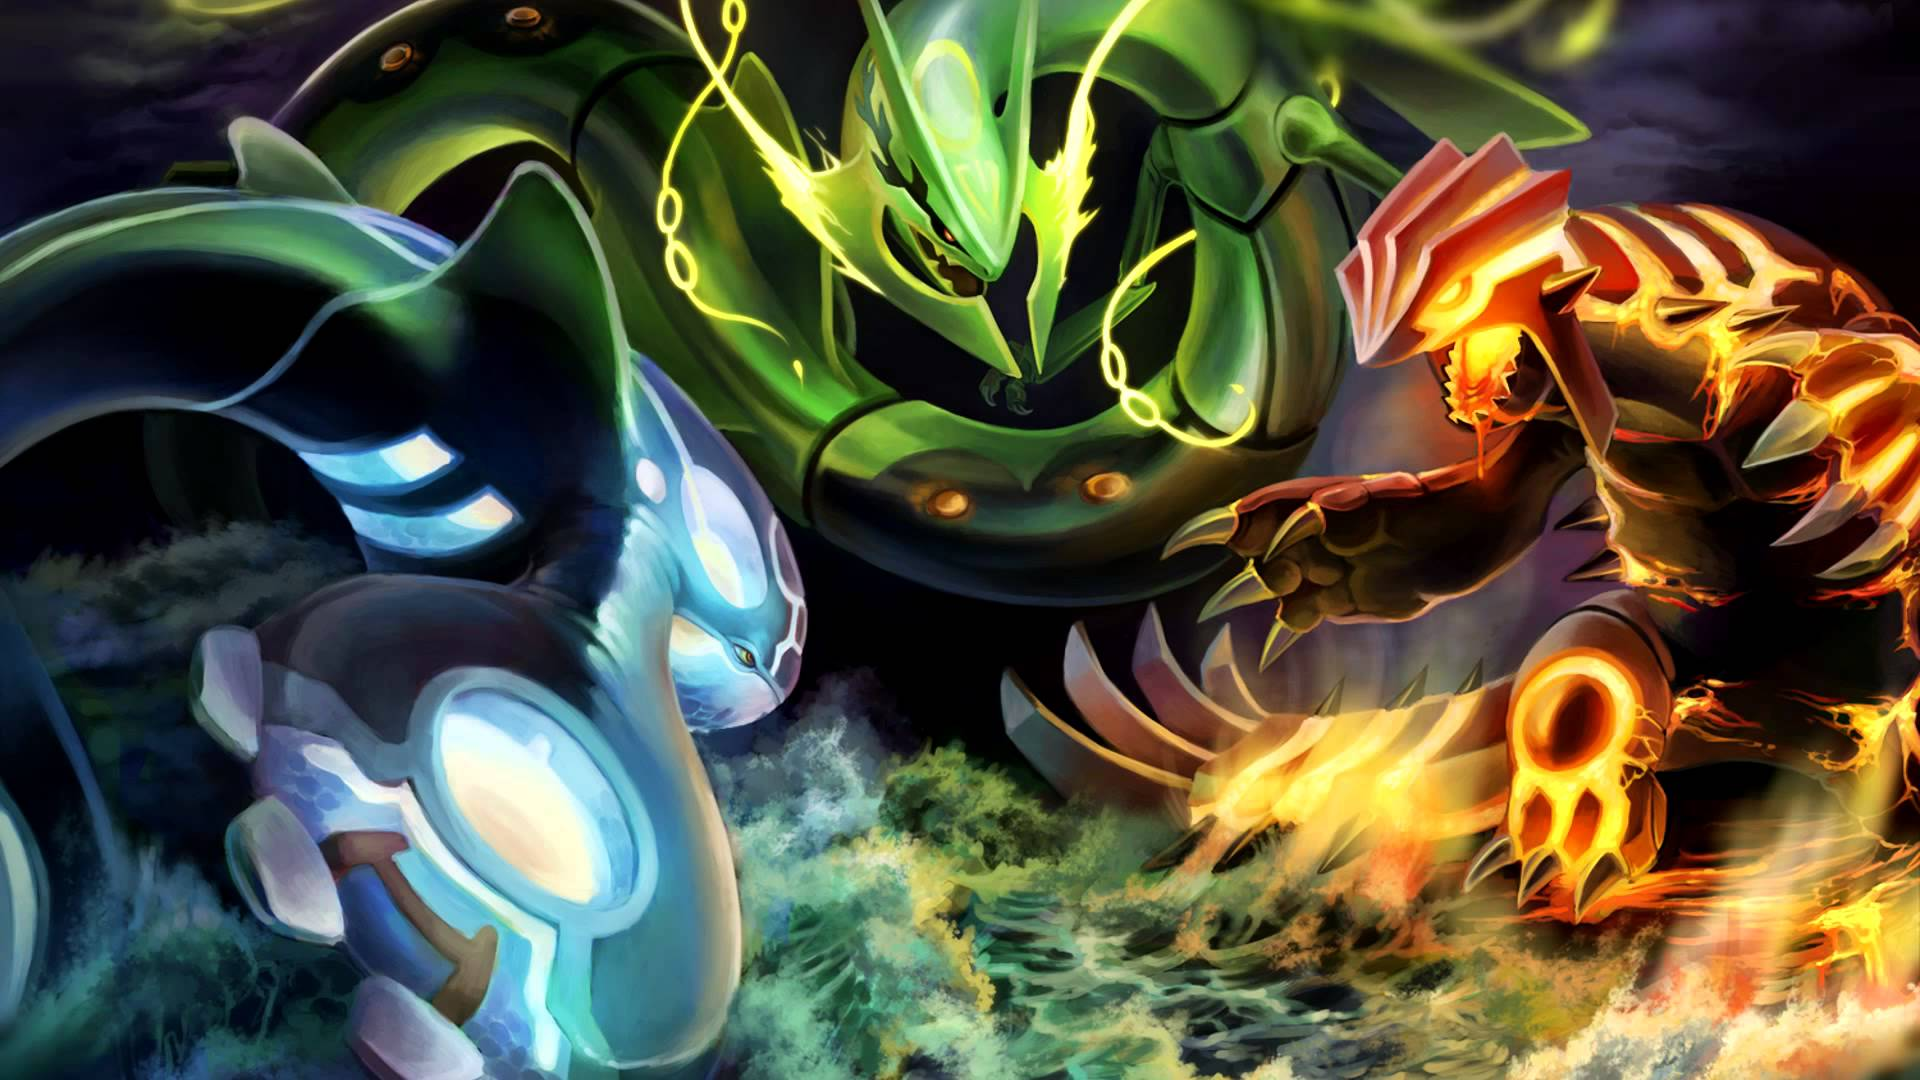 1920x1080 Epic Pokemon Wallpaper Photos Legendary Of Desktop Full Hd Pics ...